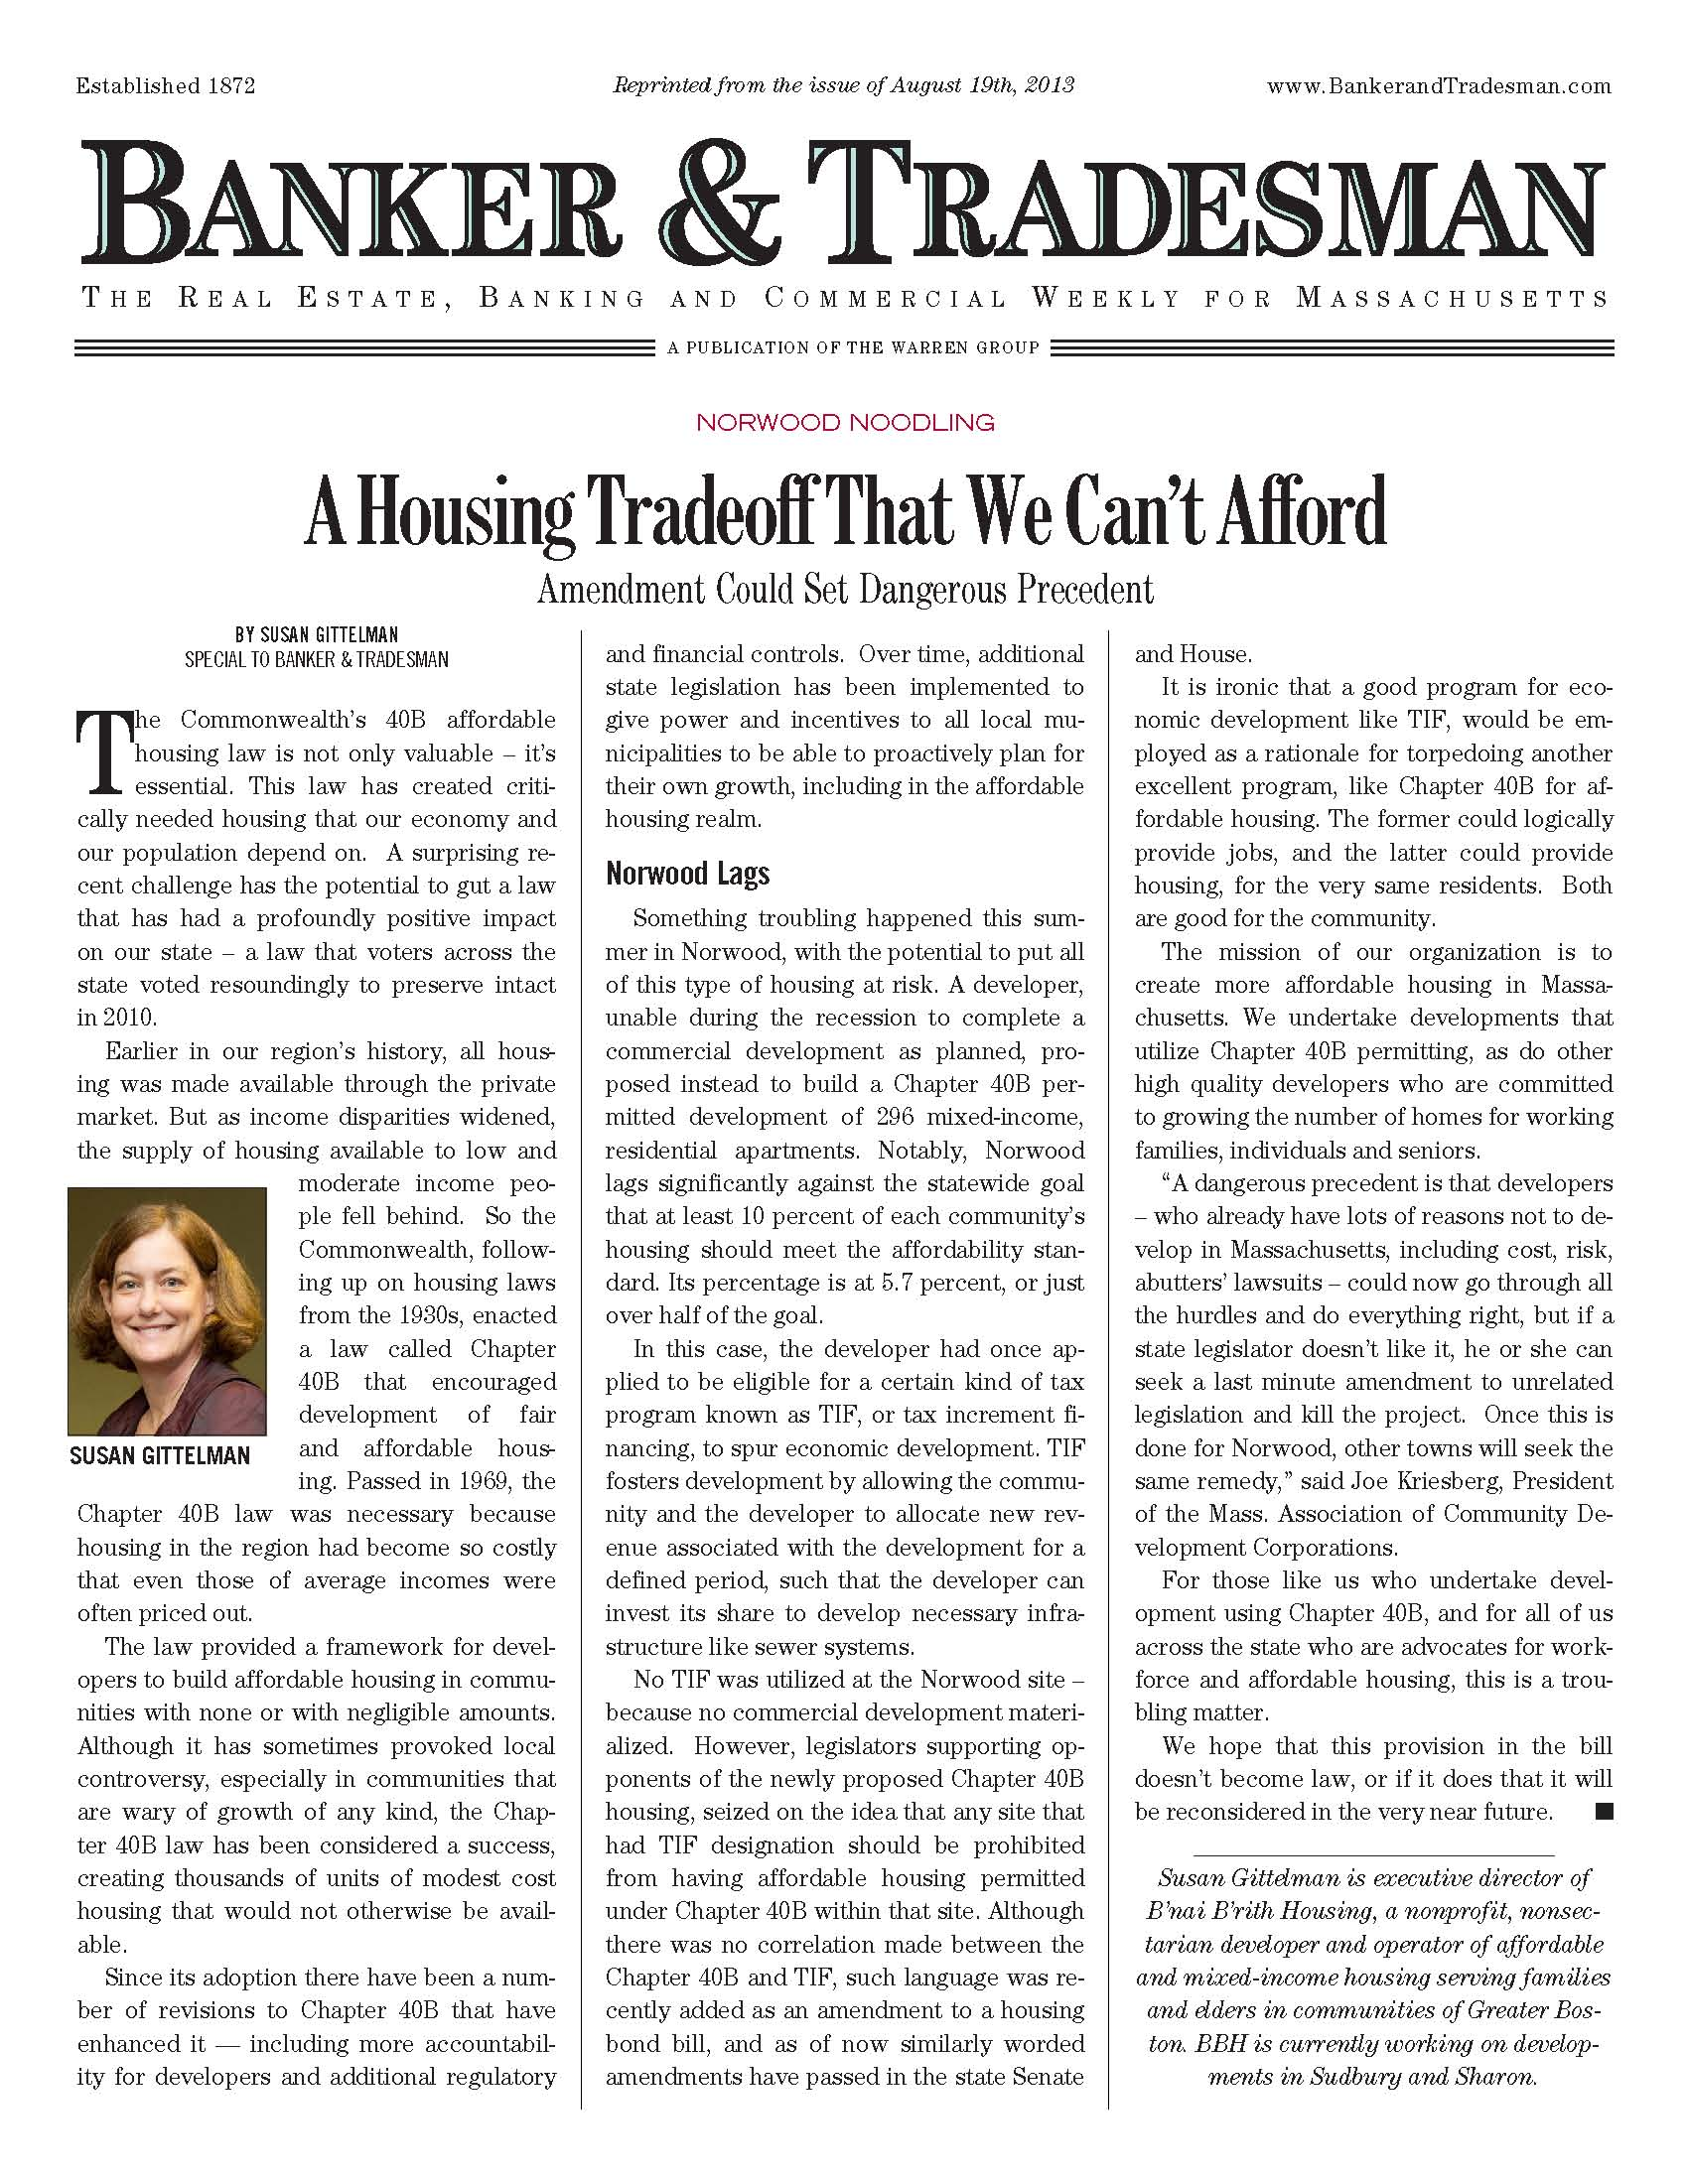 Housing_Tradeoff_That_We_Can¹t_Afford